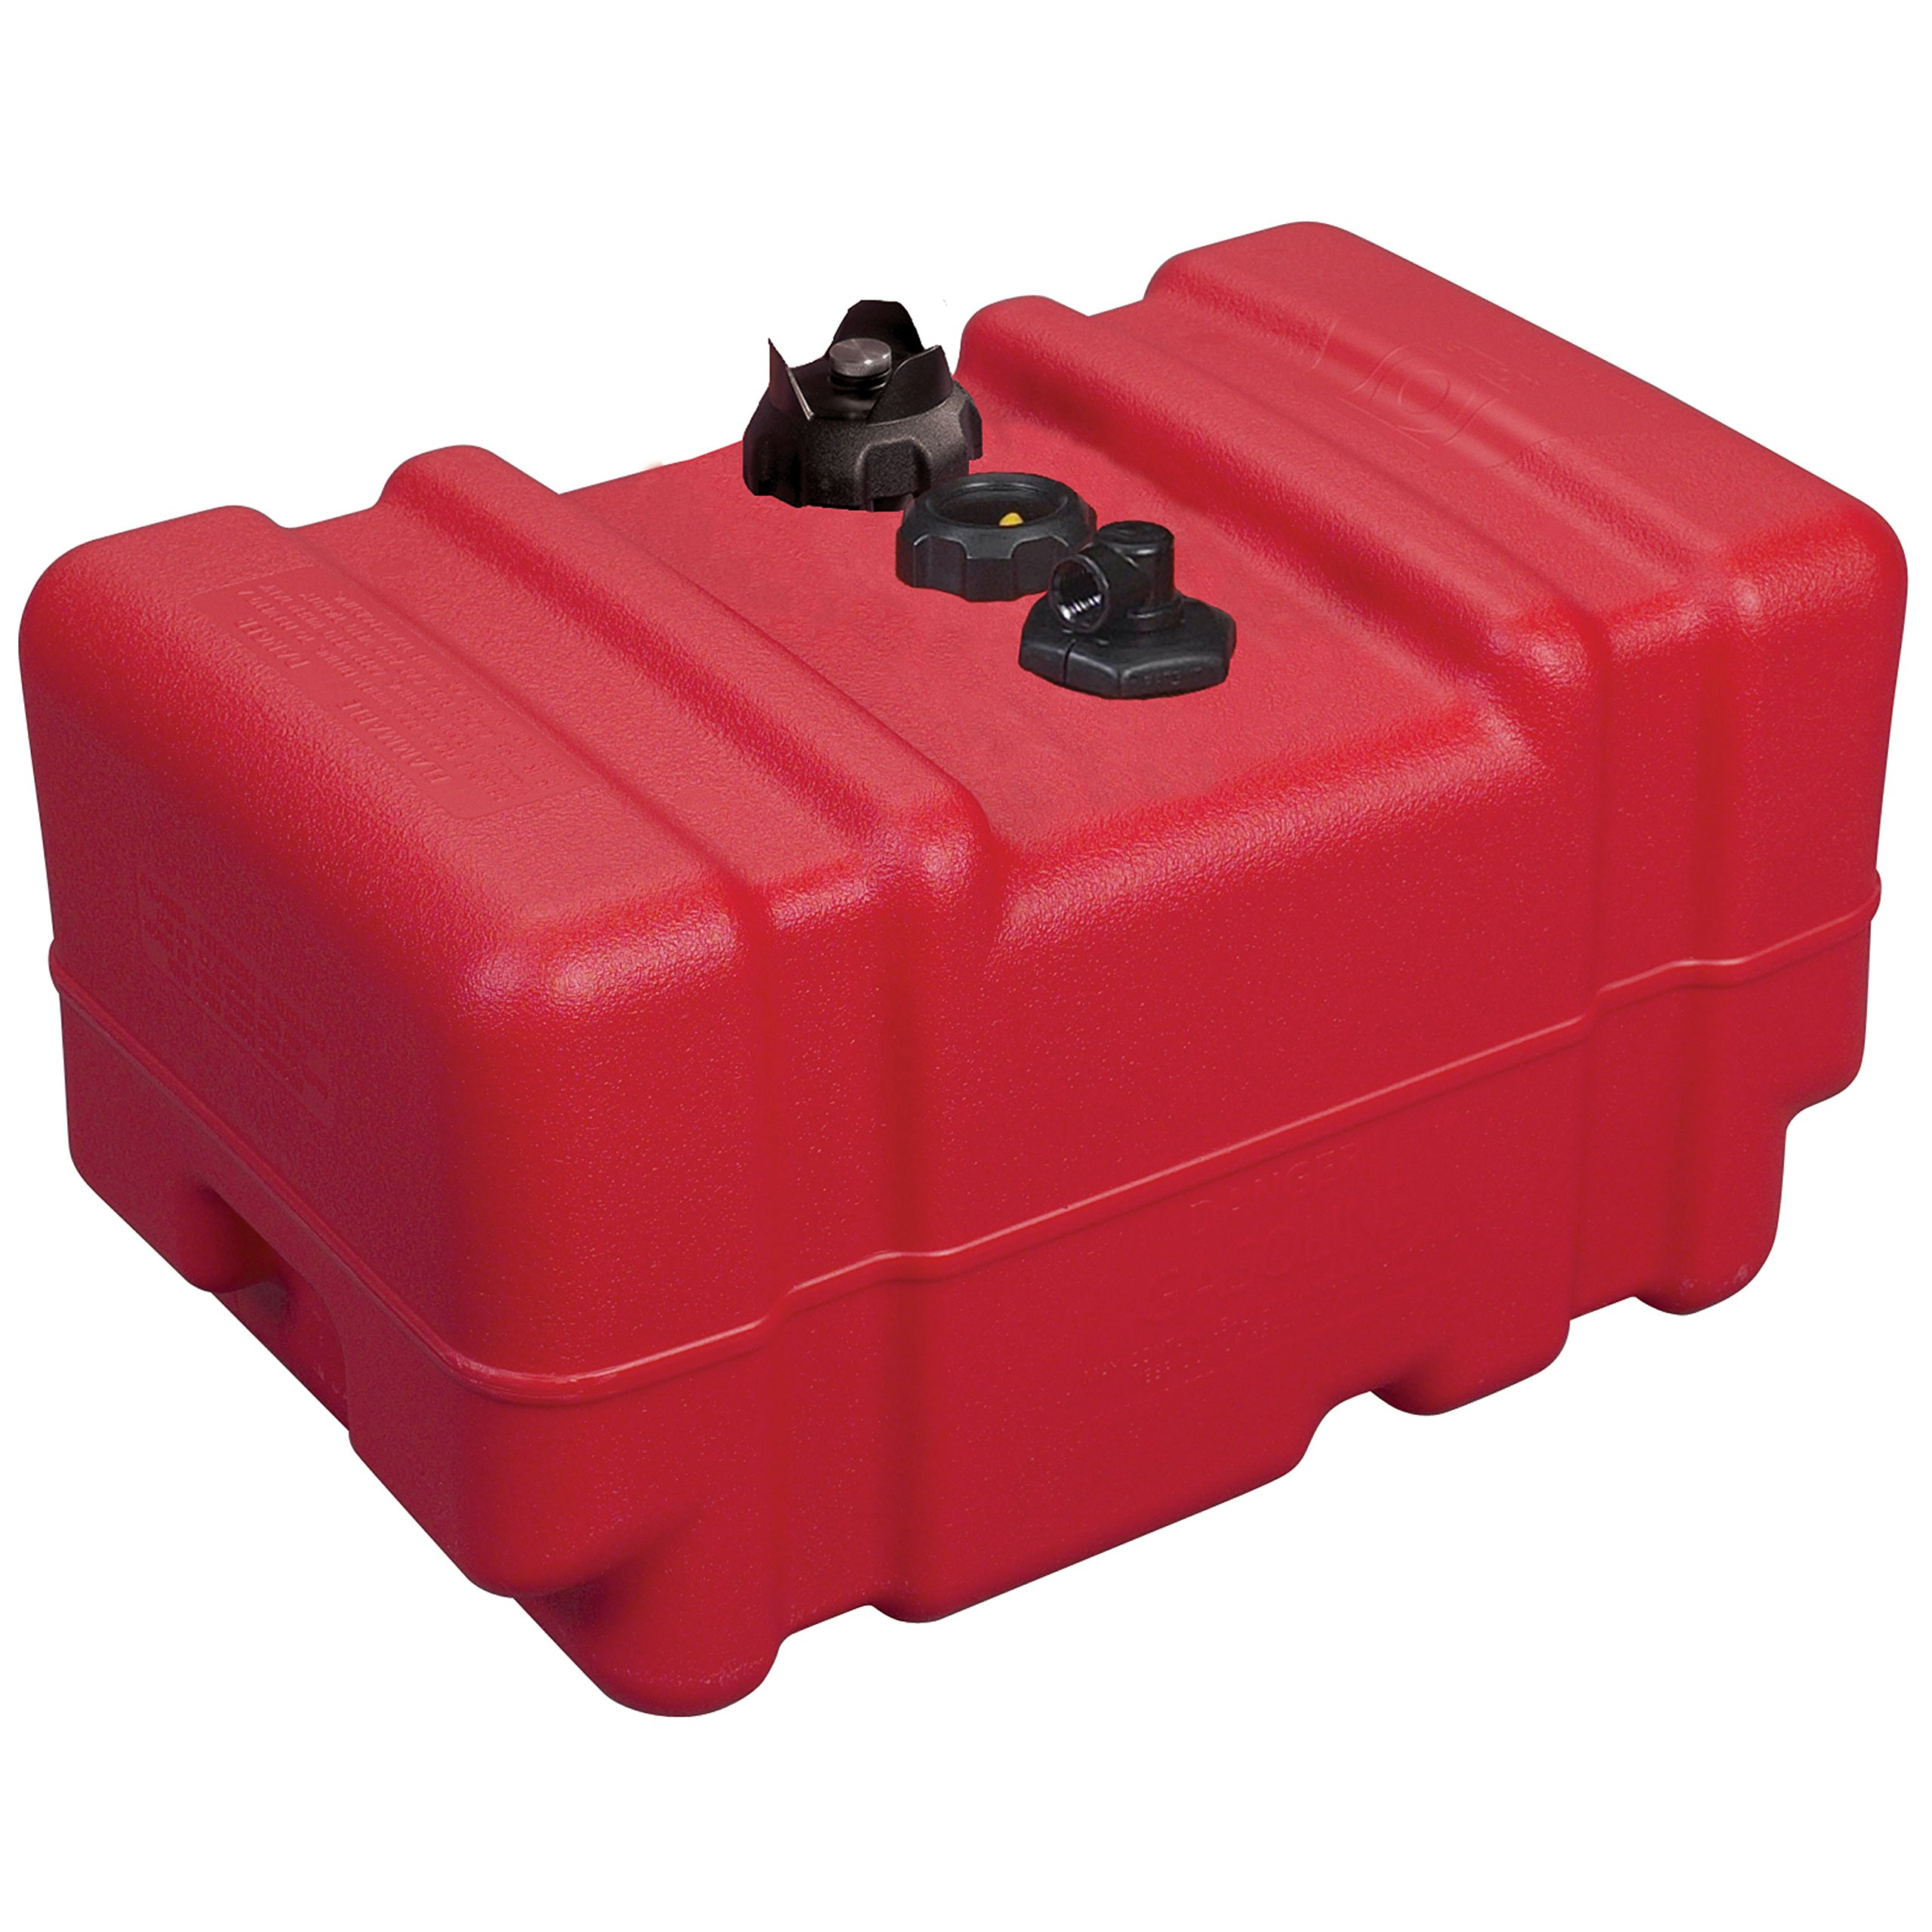 Moeller 630012LP High Profile Portable Fuel Tank - 12 Gallon